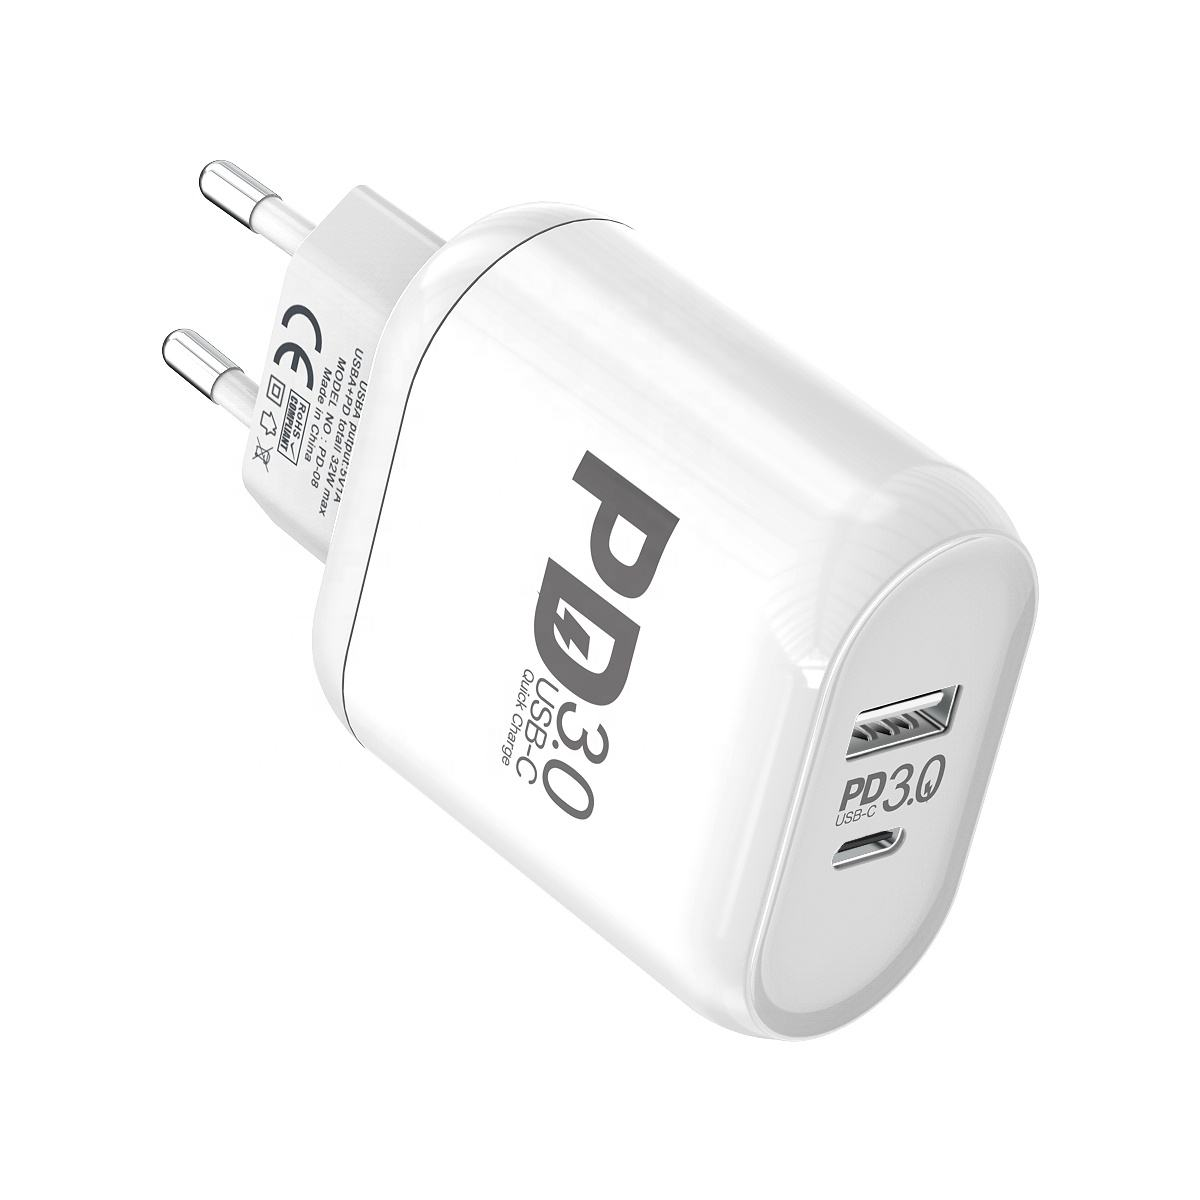 High-End USB C Lader MOXOM 32W Wall Charger PD 3.0 Type C Snel Opladen Power Levering Adapter voor iPhone MacBook Ipad